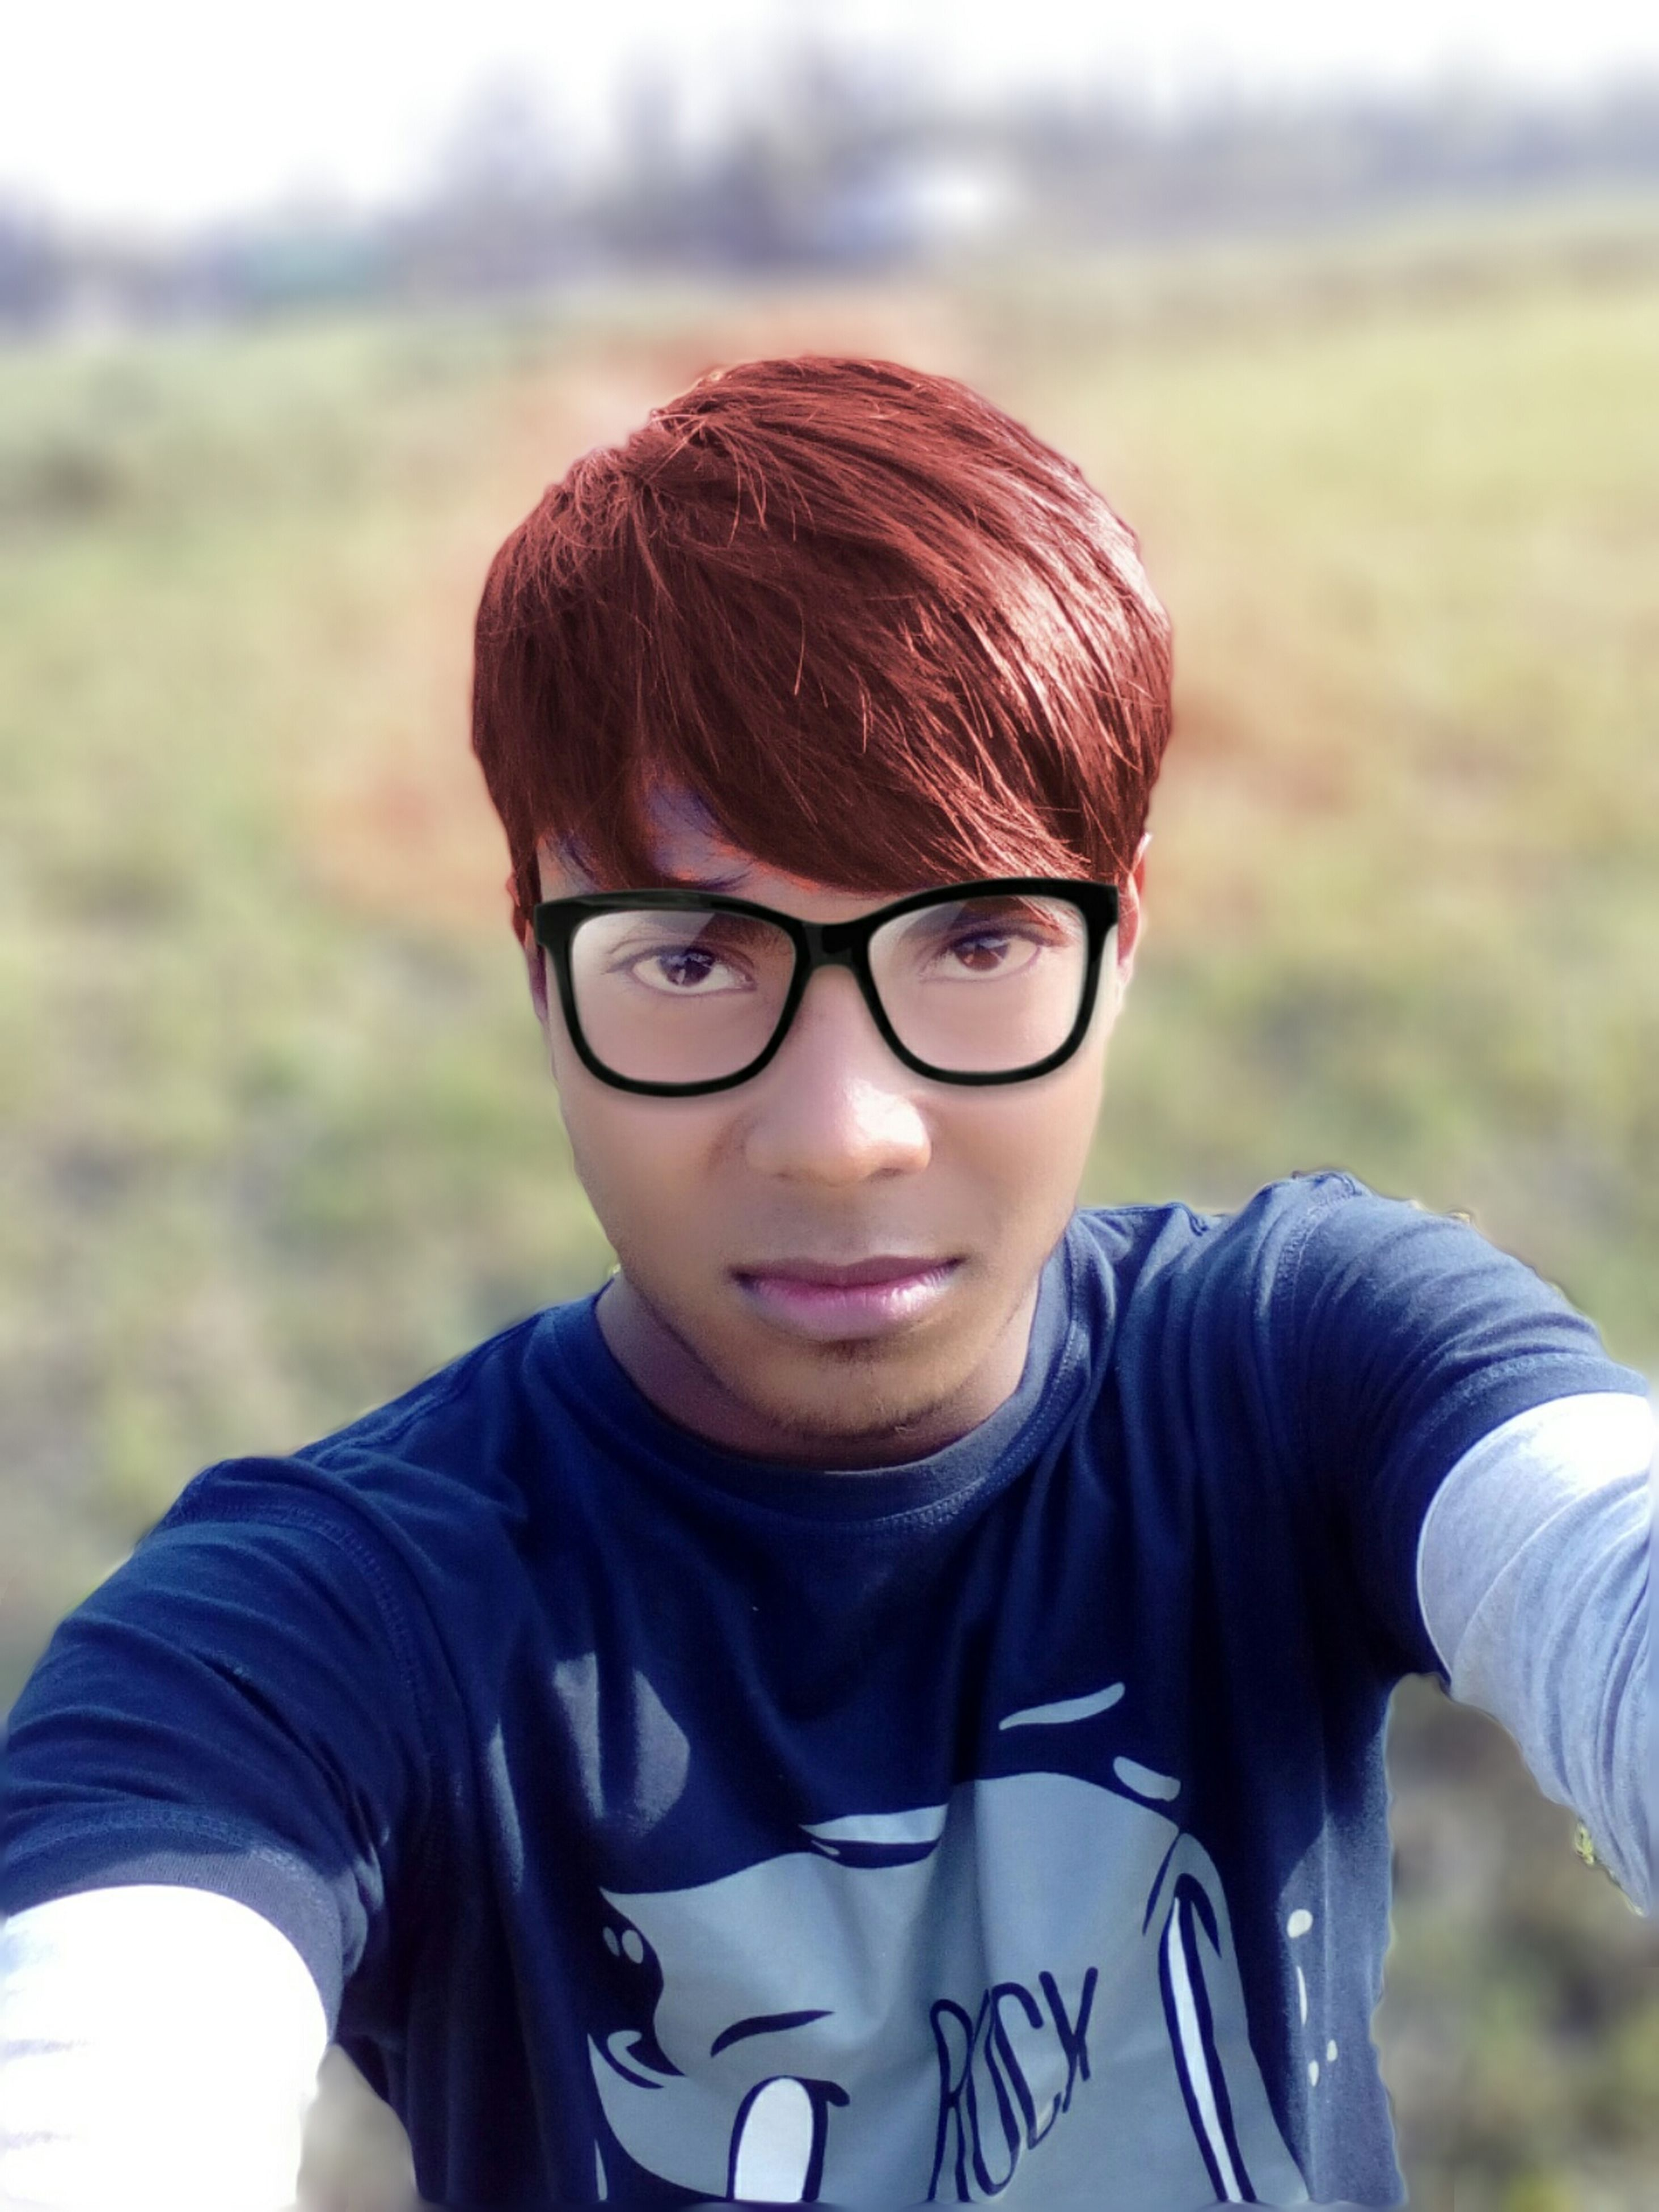 focus on foreground, lifestyles, leisure activity, person, headshot, casual clothing, portrait, close-up, looking at camera, young men, sunglasses, boys, front view, smiling, waist up, cap, childhood, head and shoulders